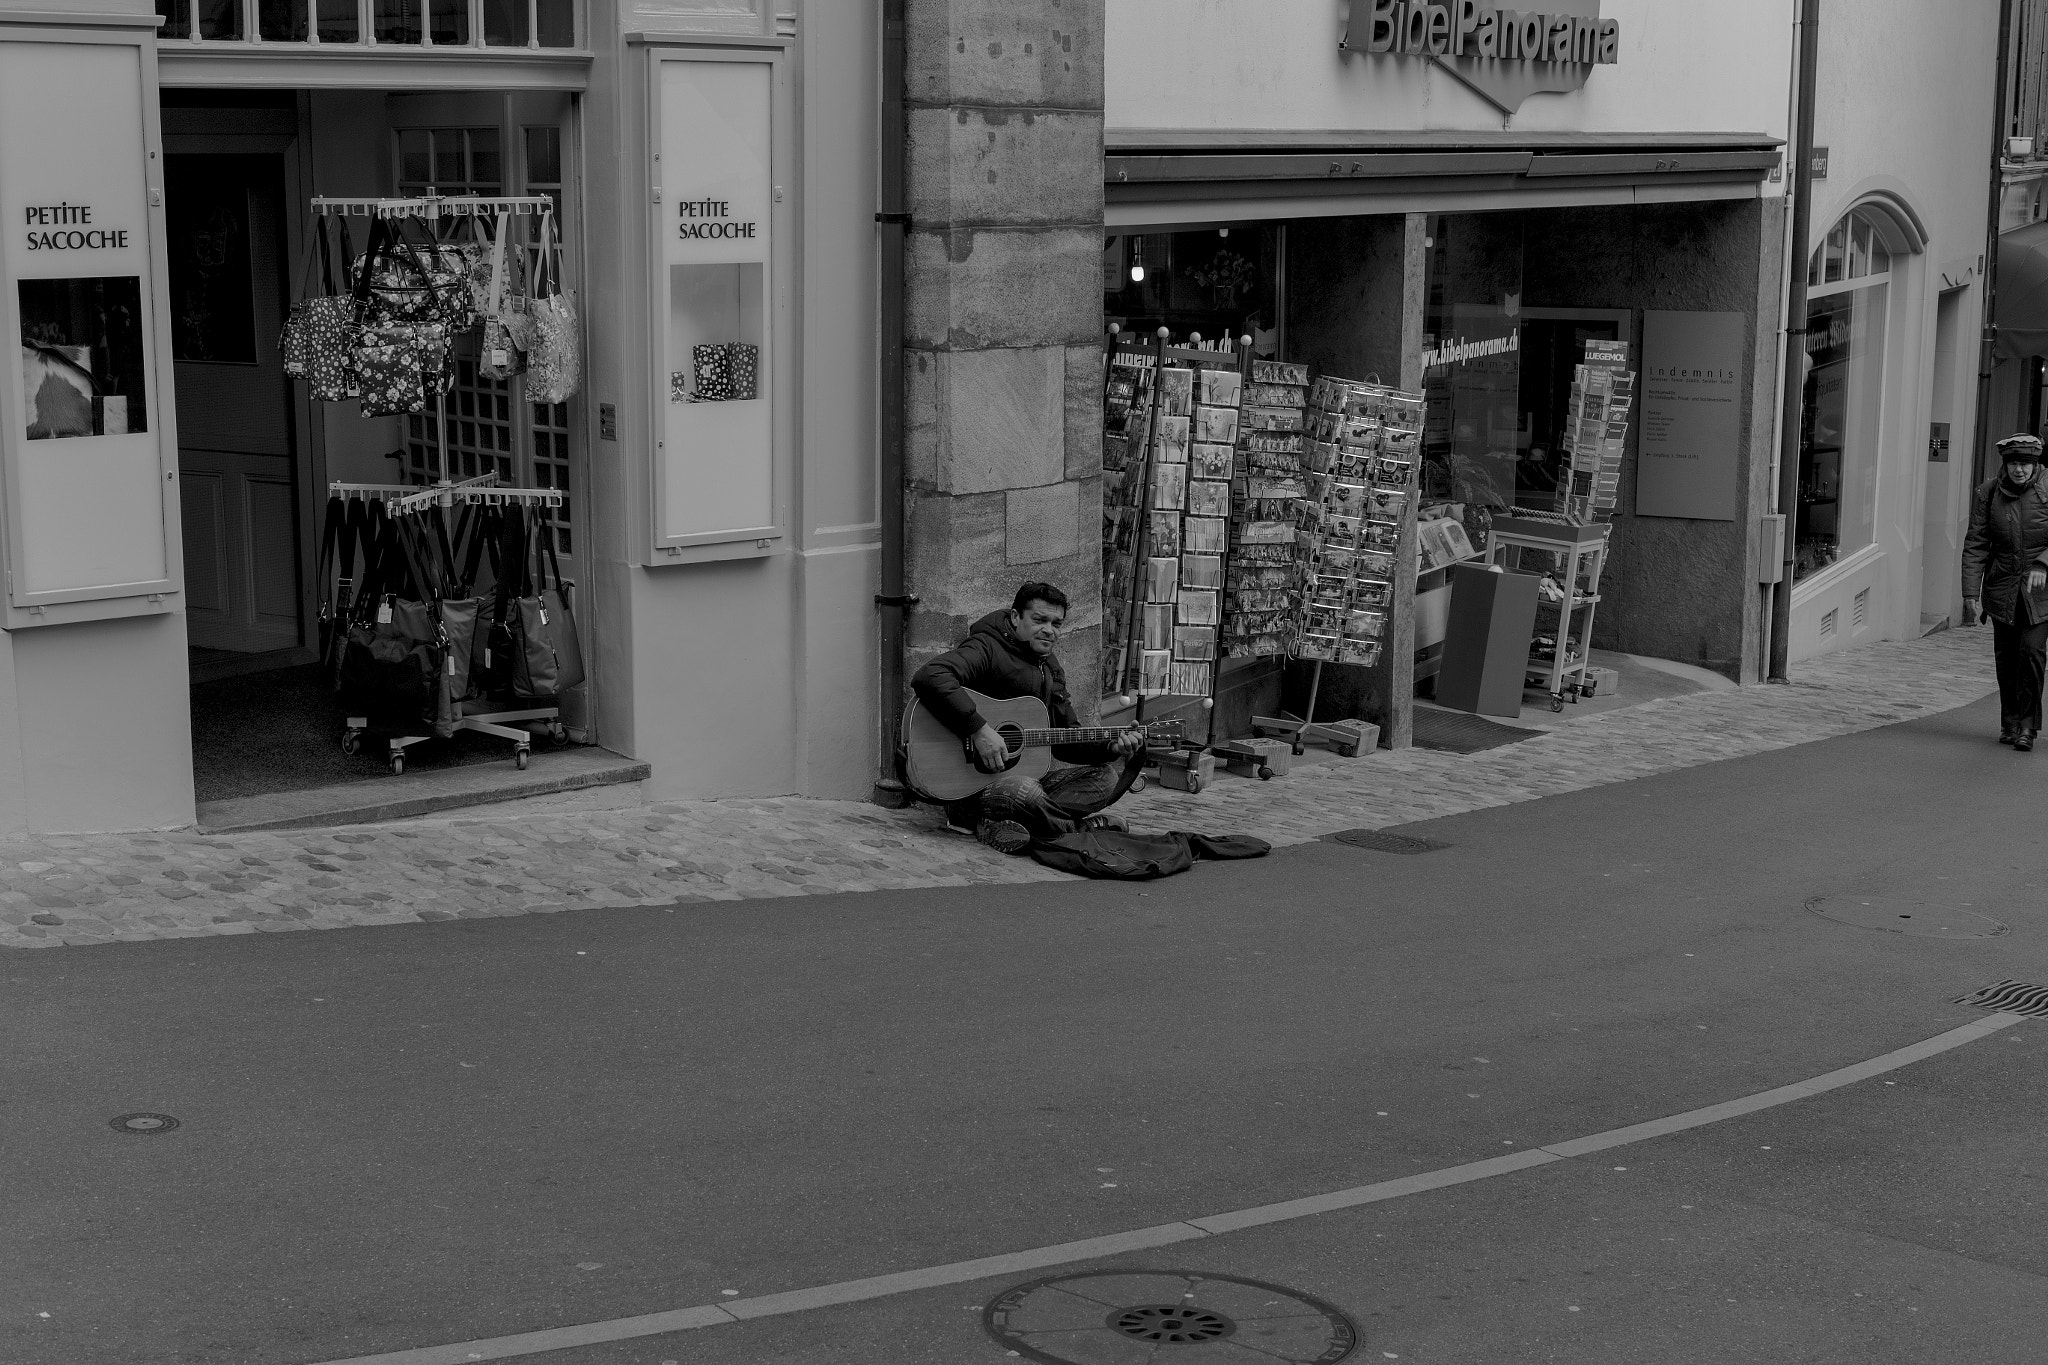 Photograph Streetmusic by Stefan Williner on 500px